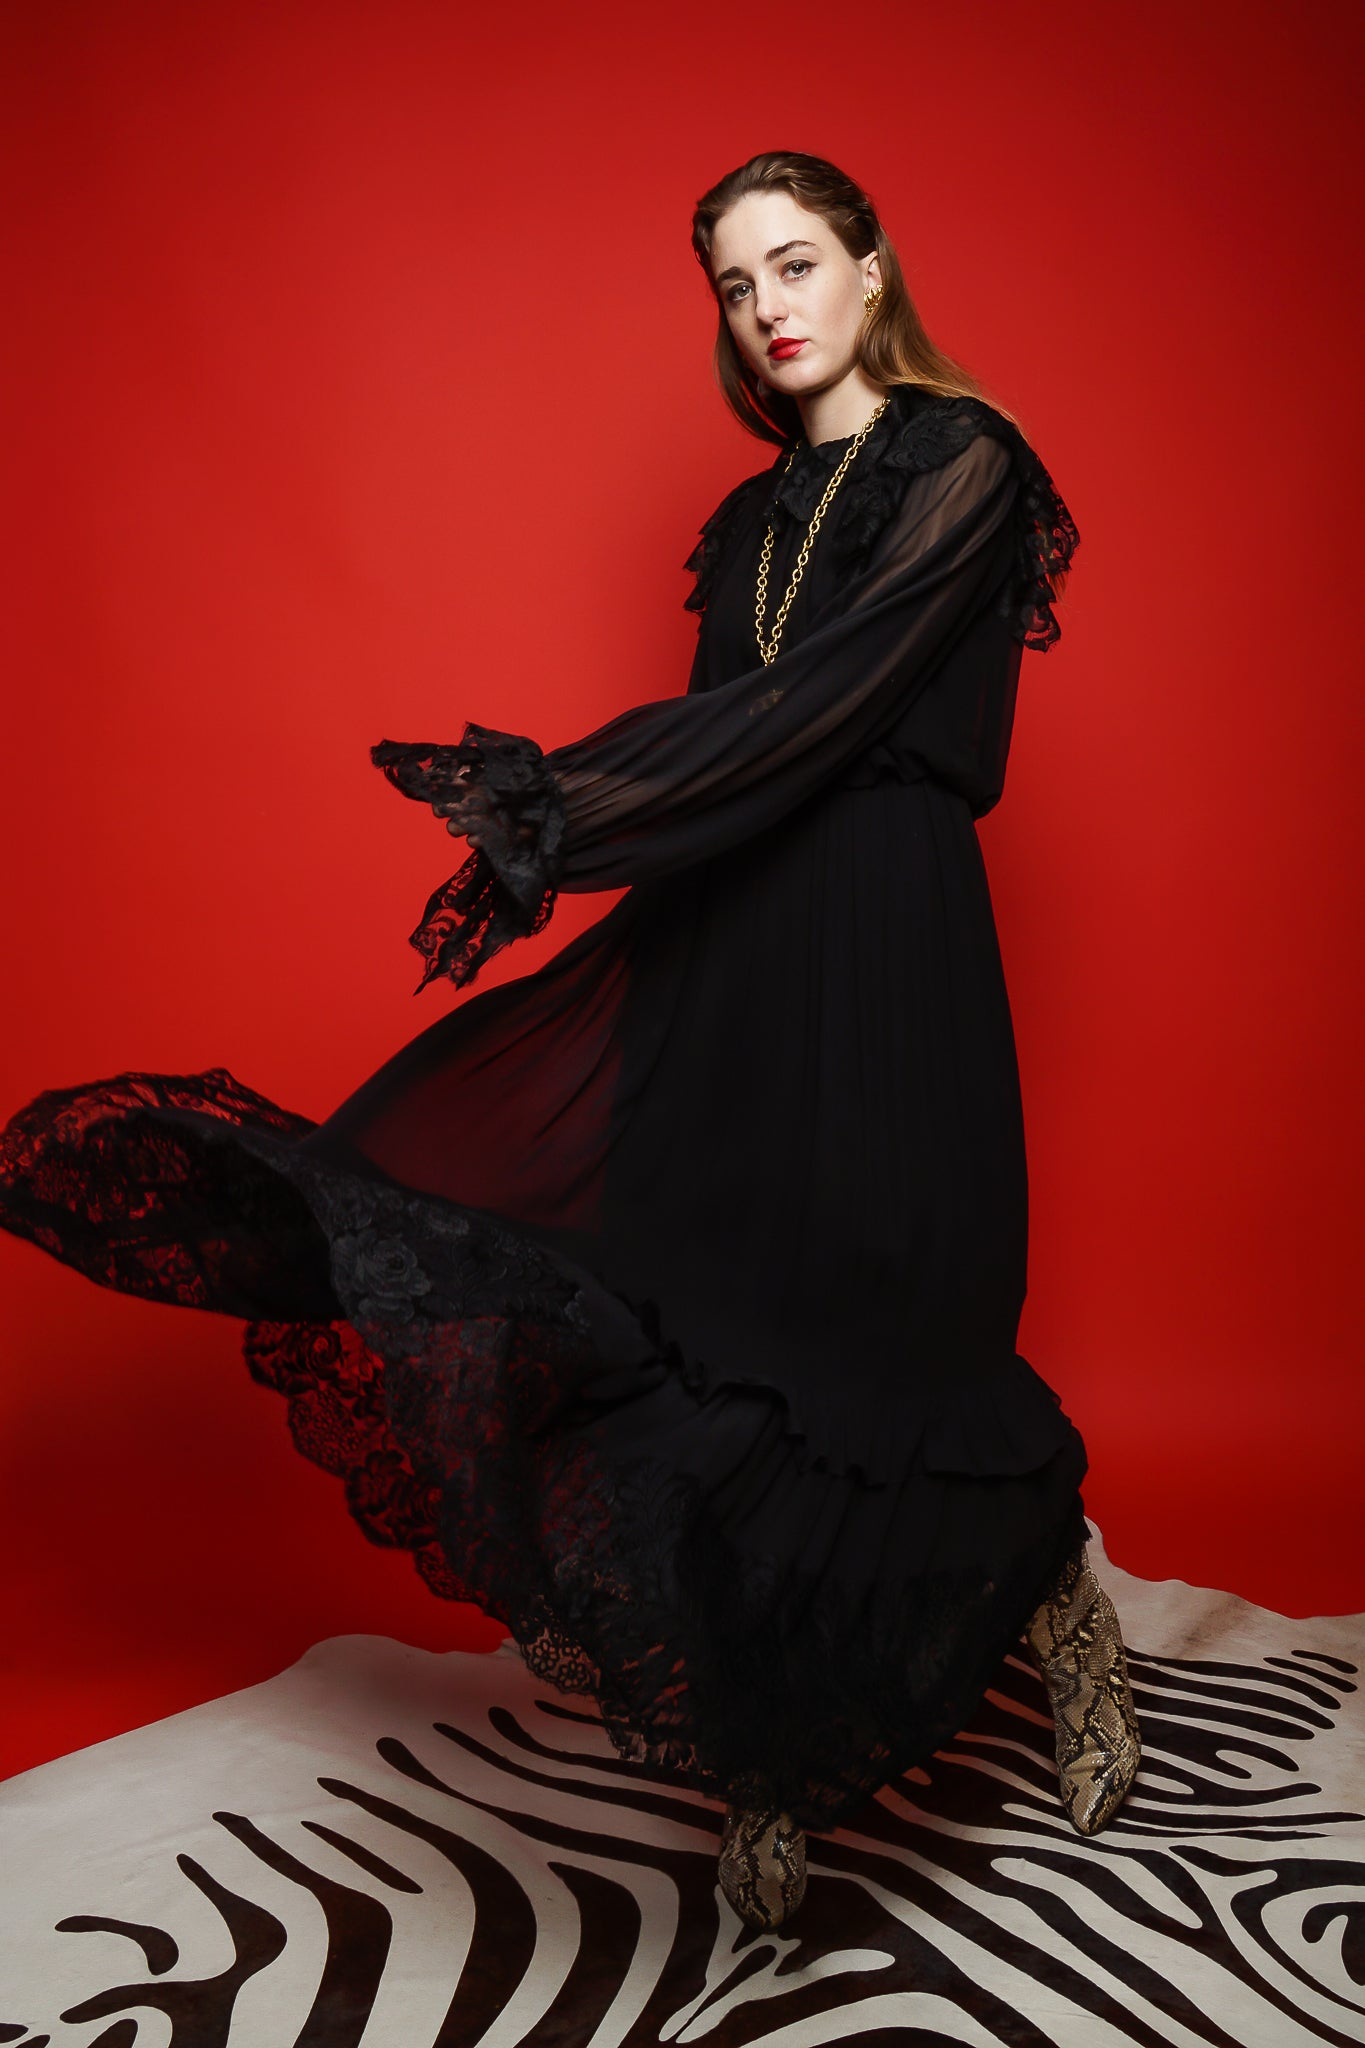 Girl in black Richilene lace trim dress on red background zebra rug at Recess Los Angeles